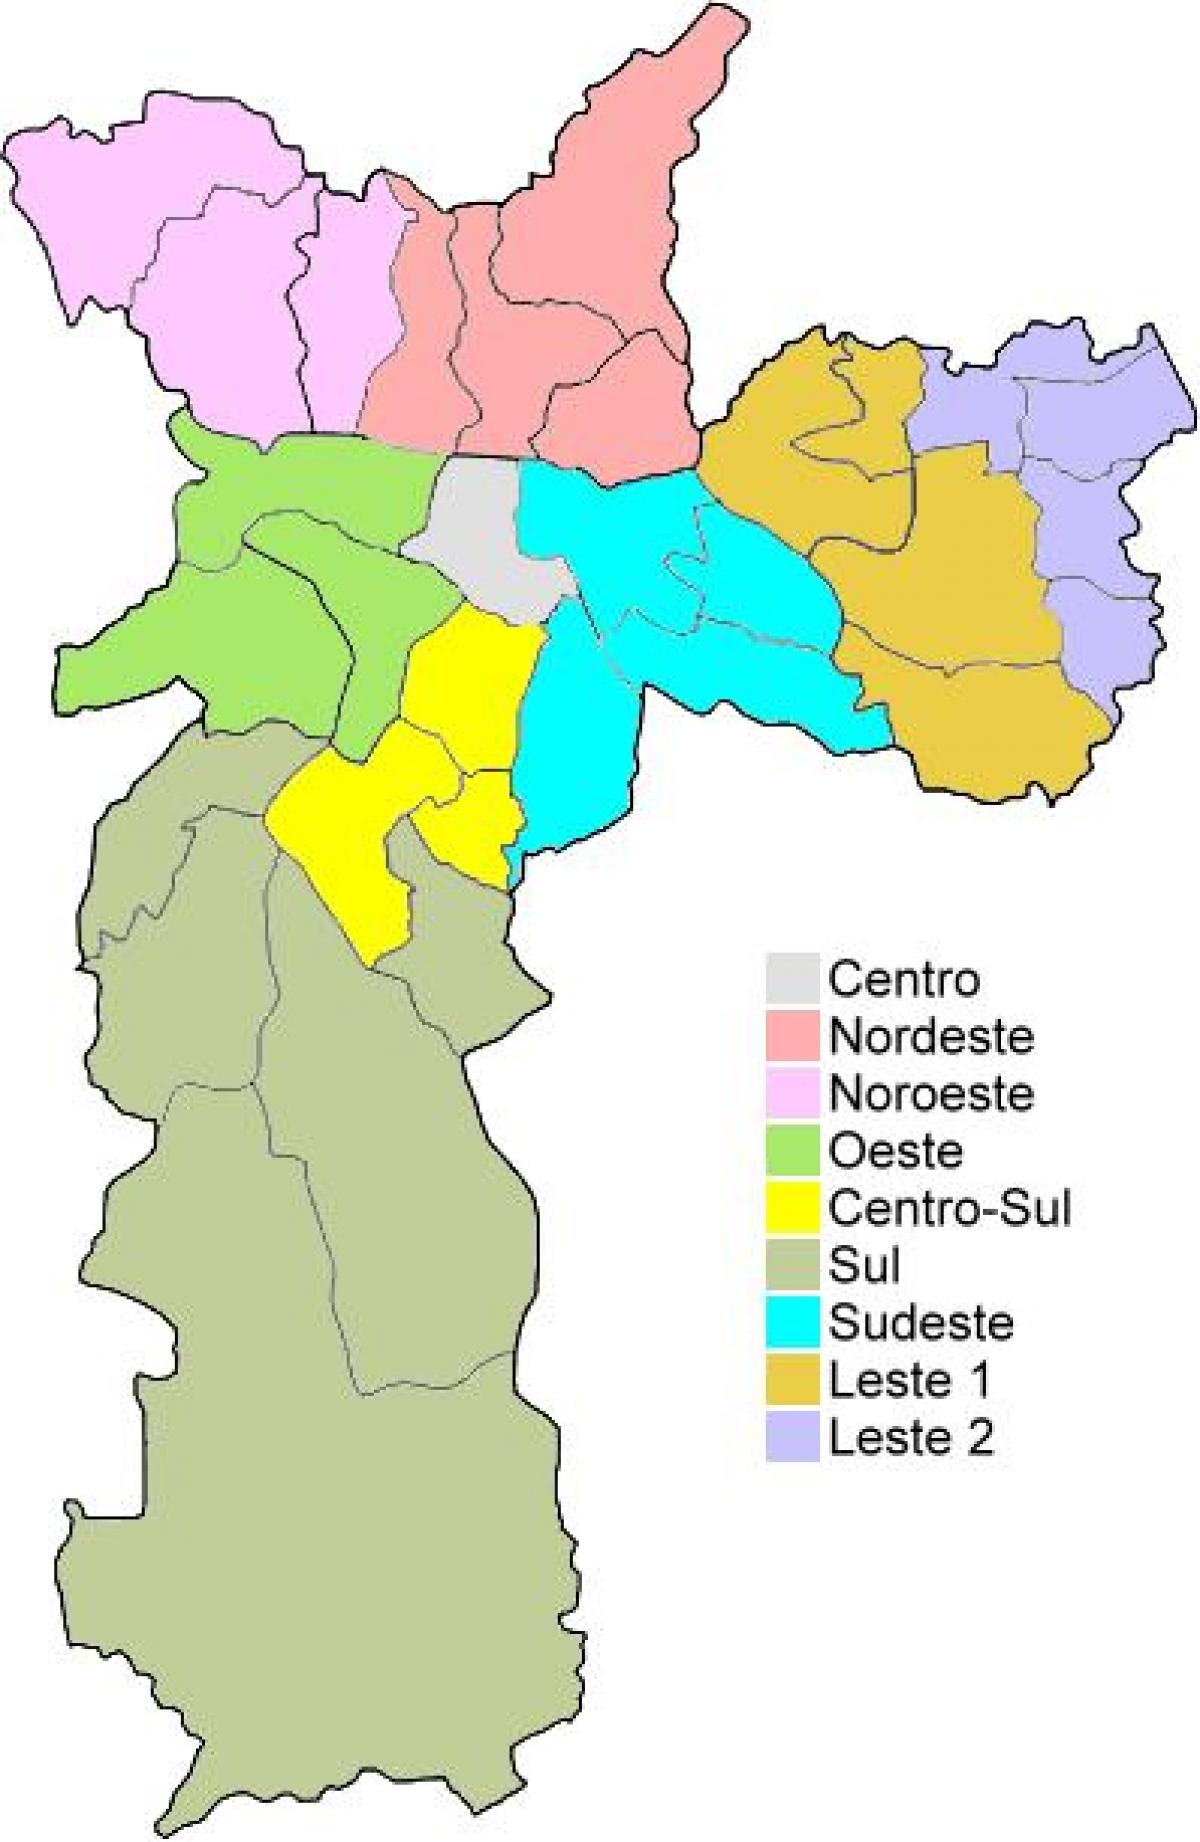 Map of administrative regions in São Paulo